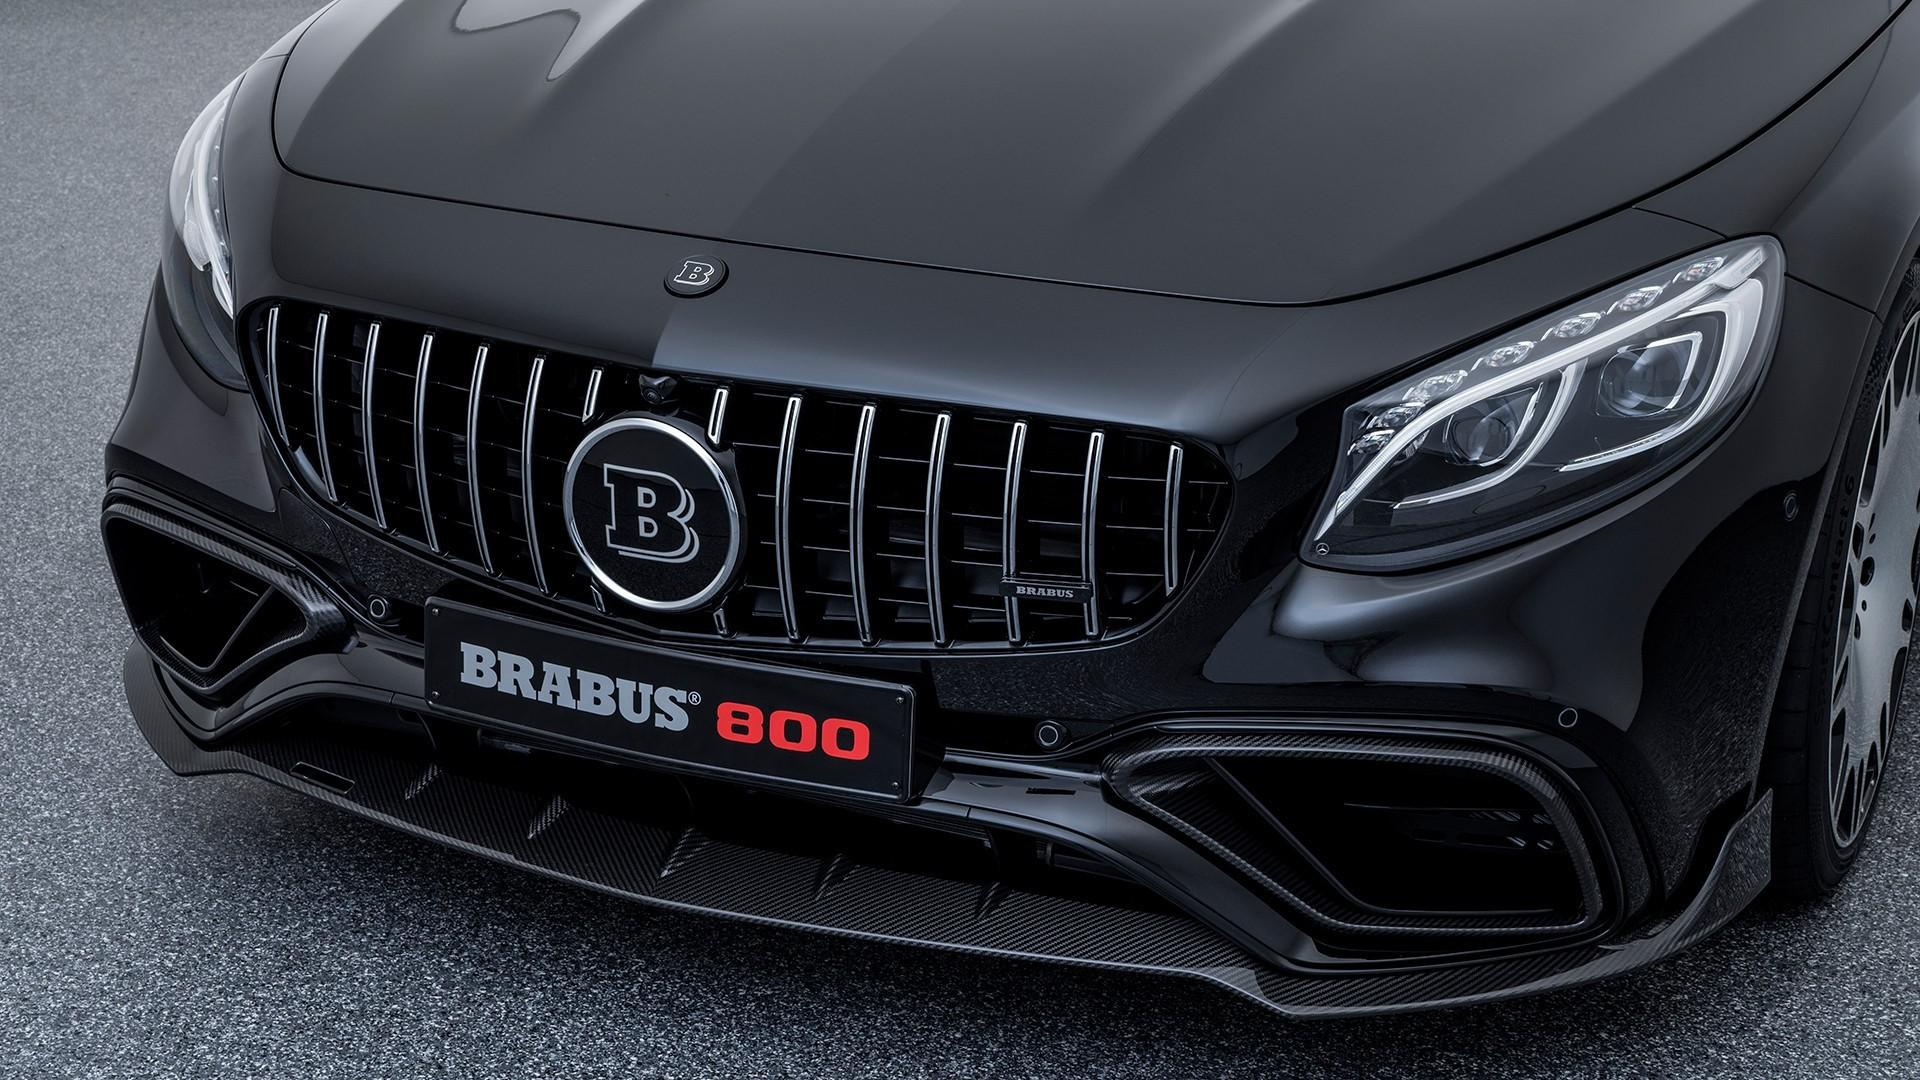 brabus-800-performance-mercedes-benz-s63-4matic-coupe-803-9.jpg